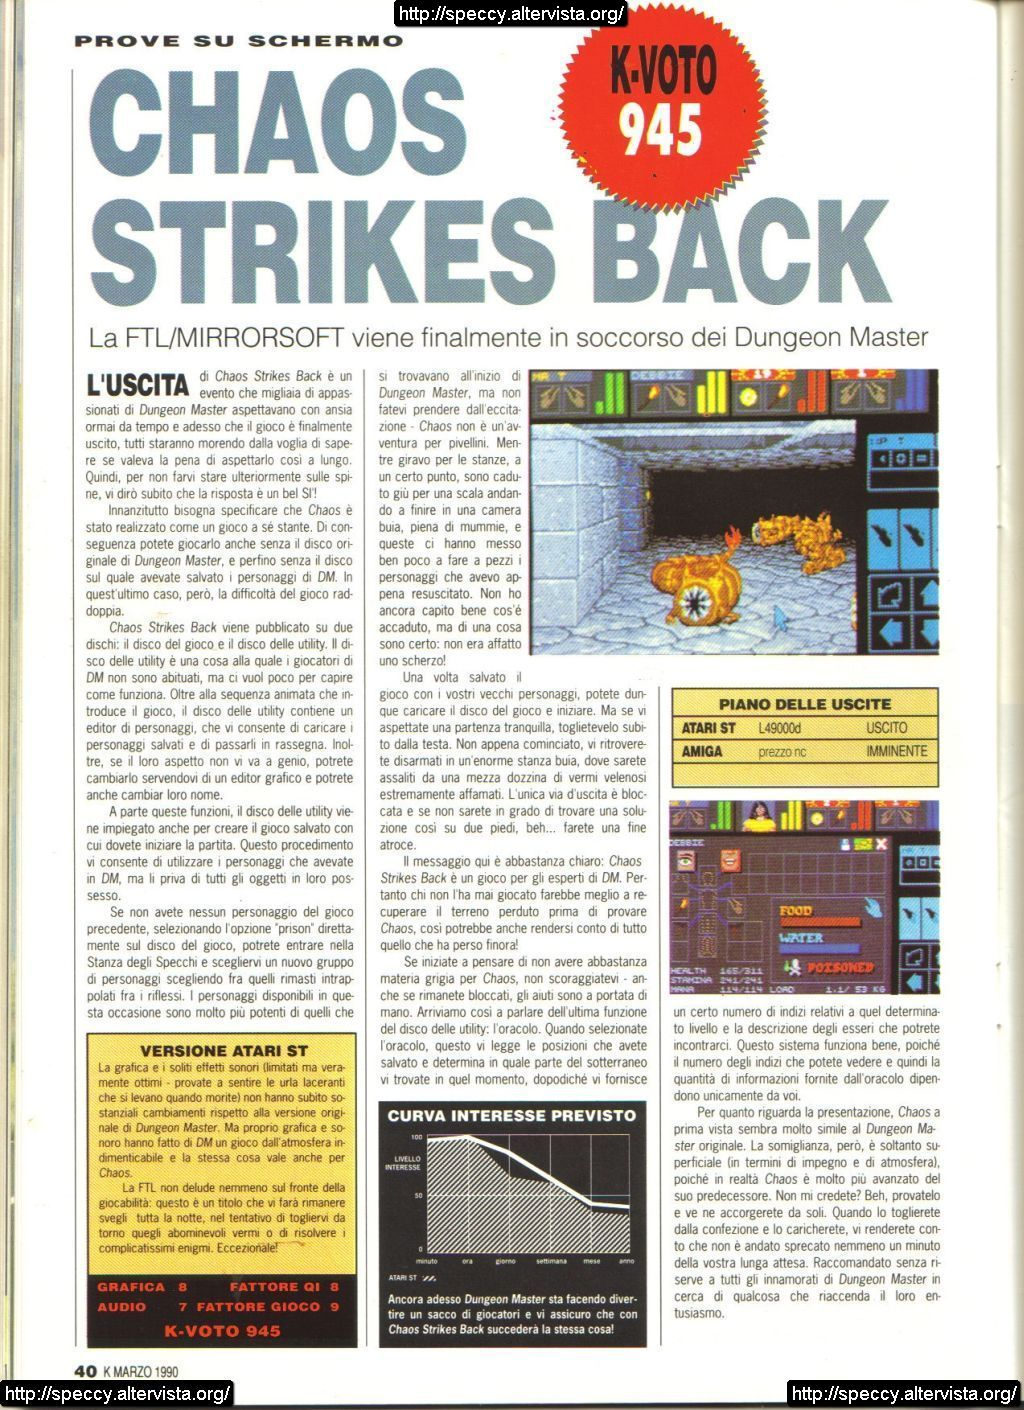 Chaos Strikes Back for Atari ST Review published in Italian magazine 'K', Issue #15, March 1990, Page 42